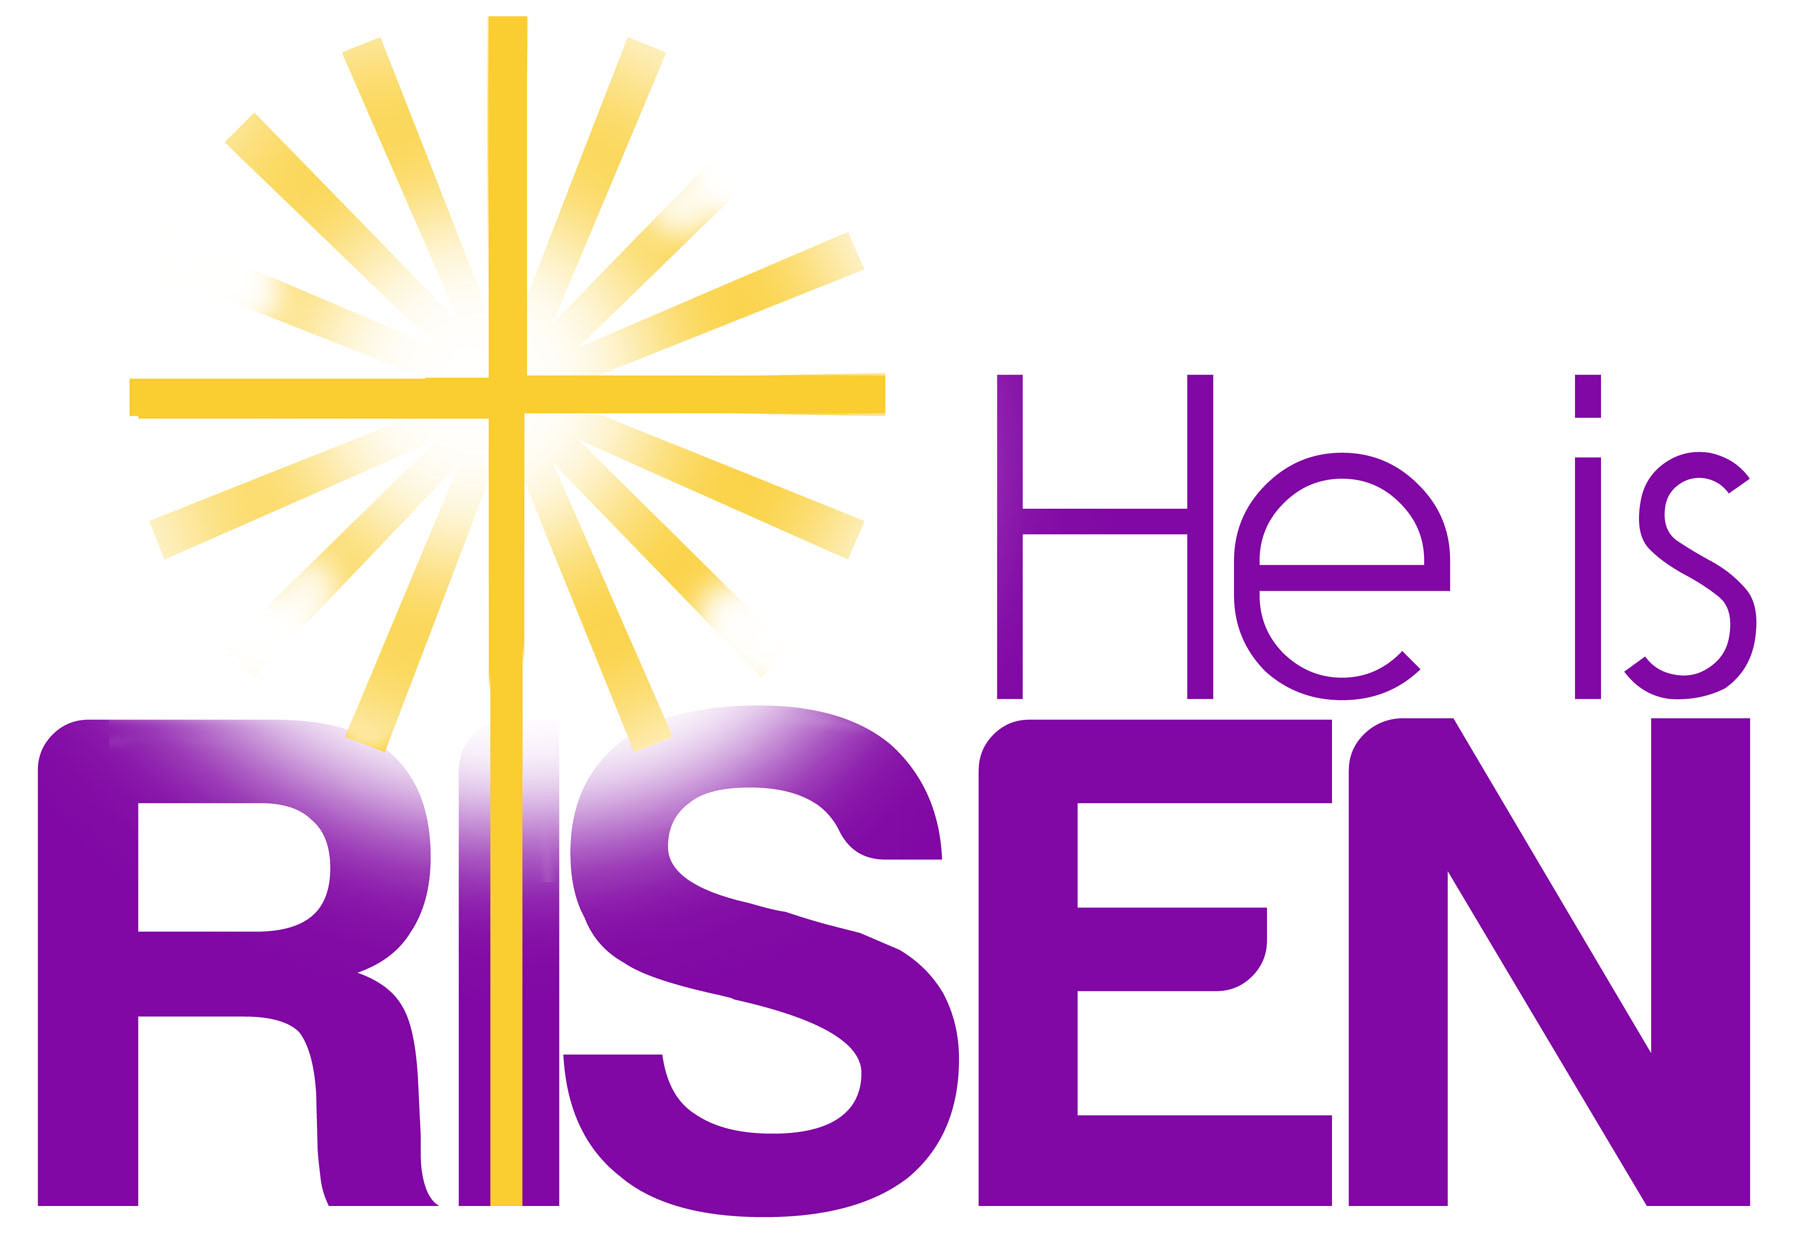 Easter resurrection clipart free.